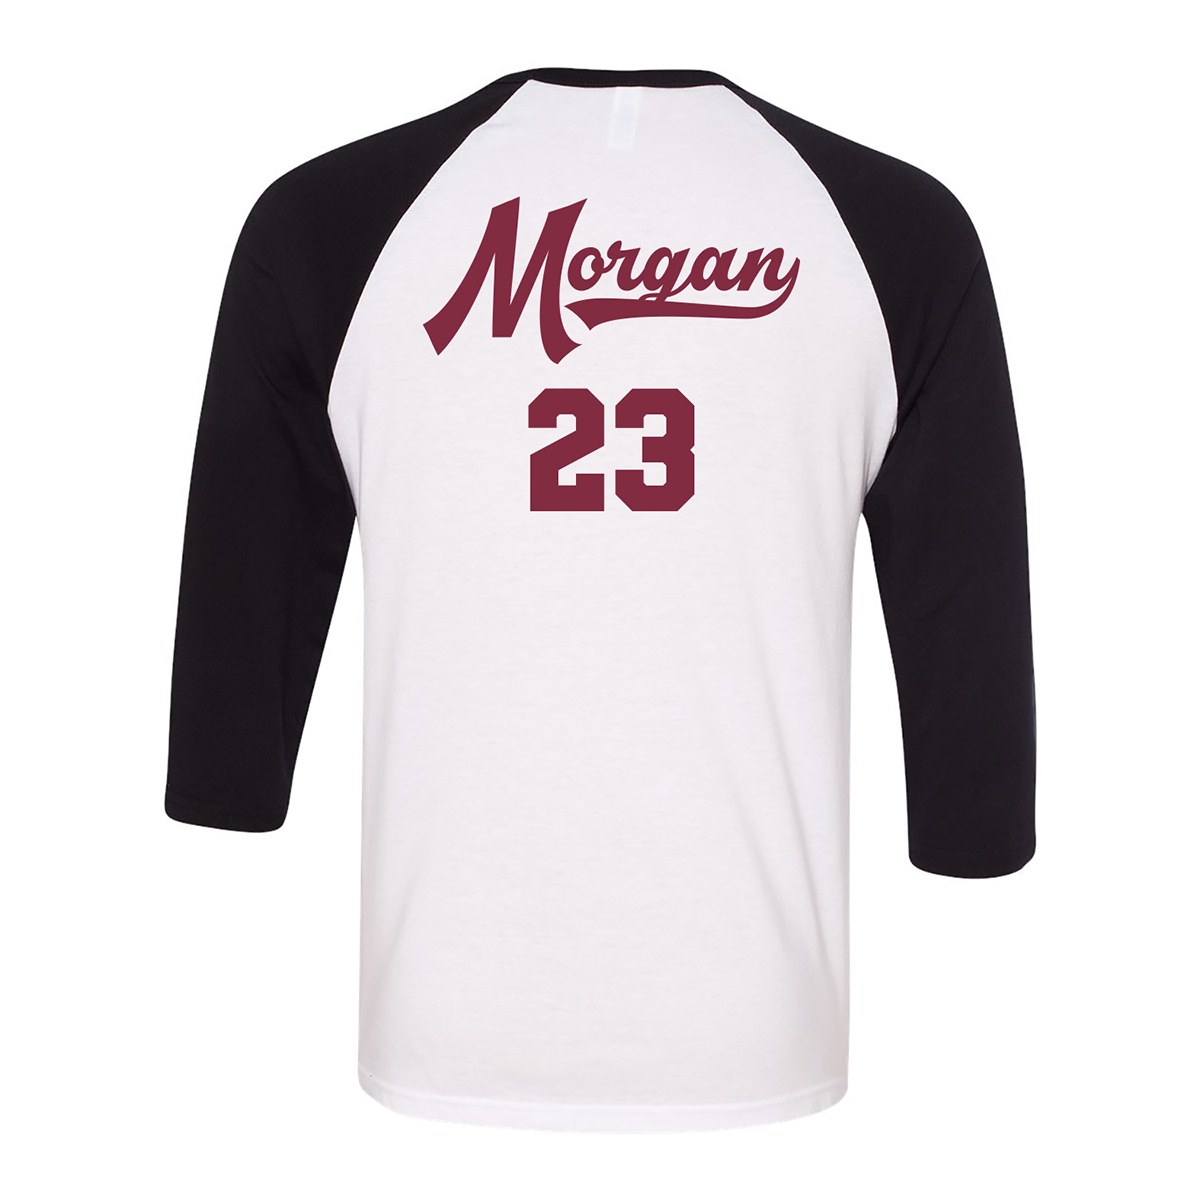 General Hospital Corinthos Raglan (White/Black)